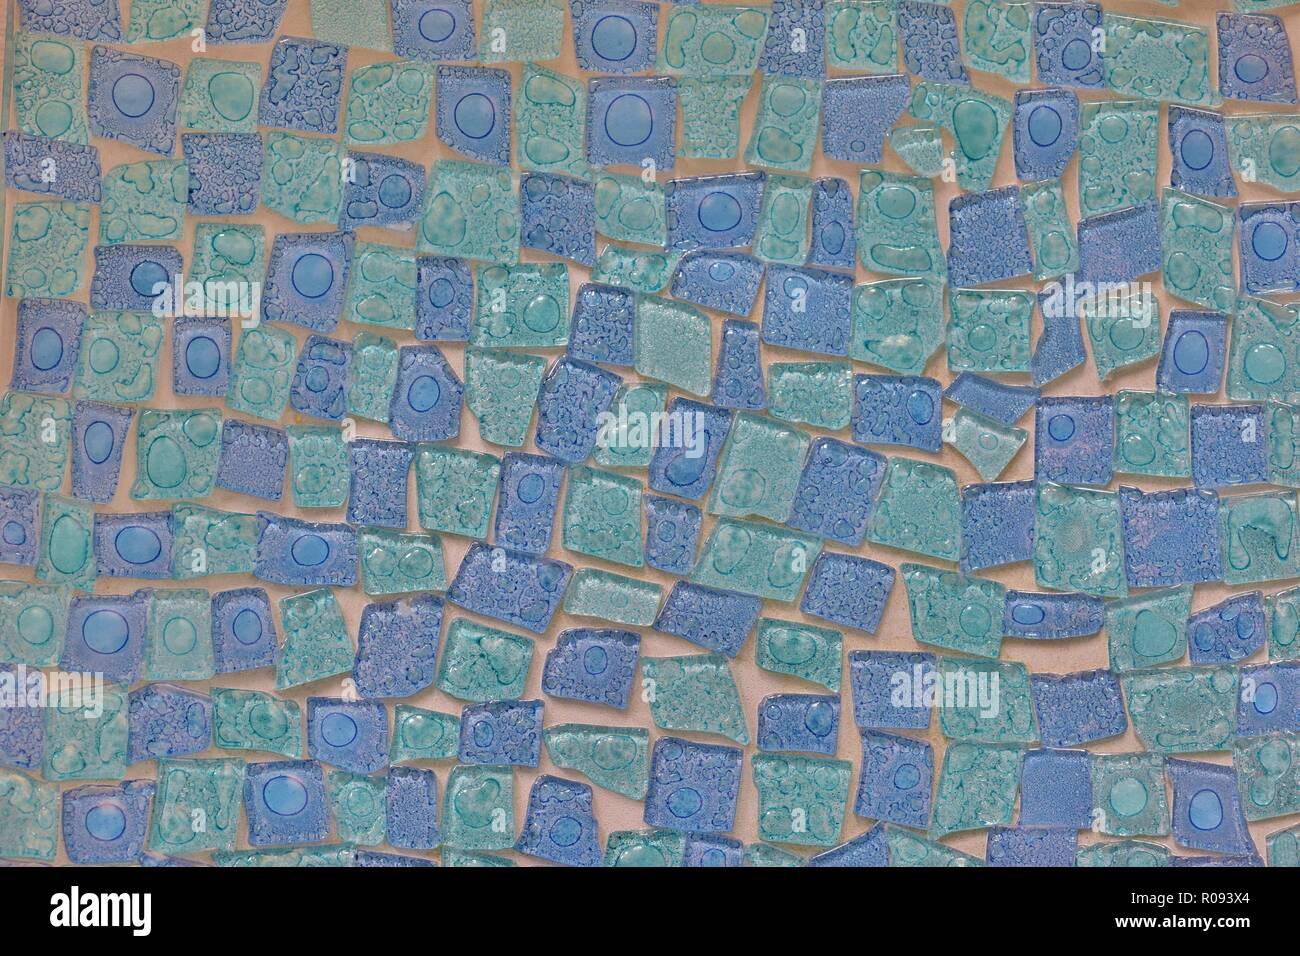 A mosaic pattern of uneven tiles with two-tone blues and a glossy finish. - Stock Image